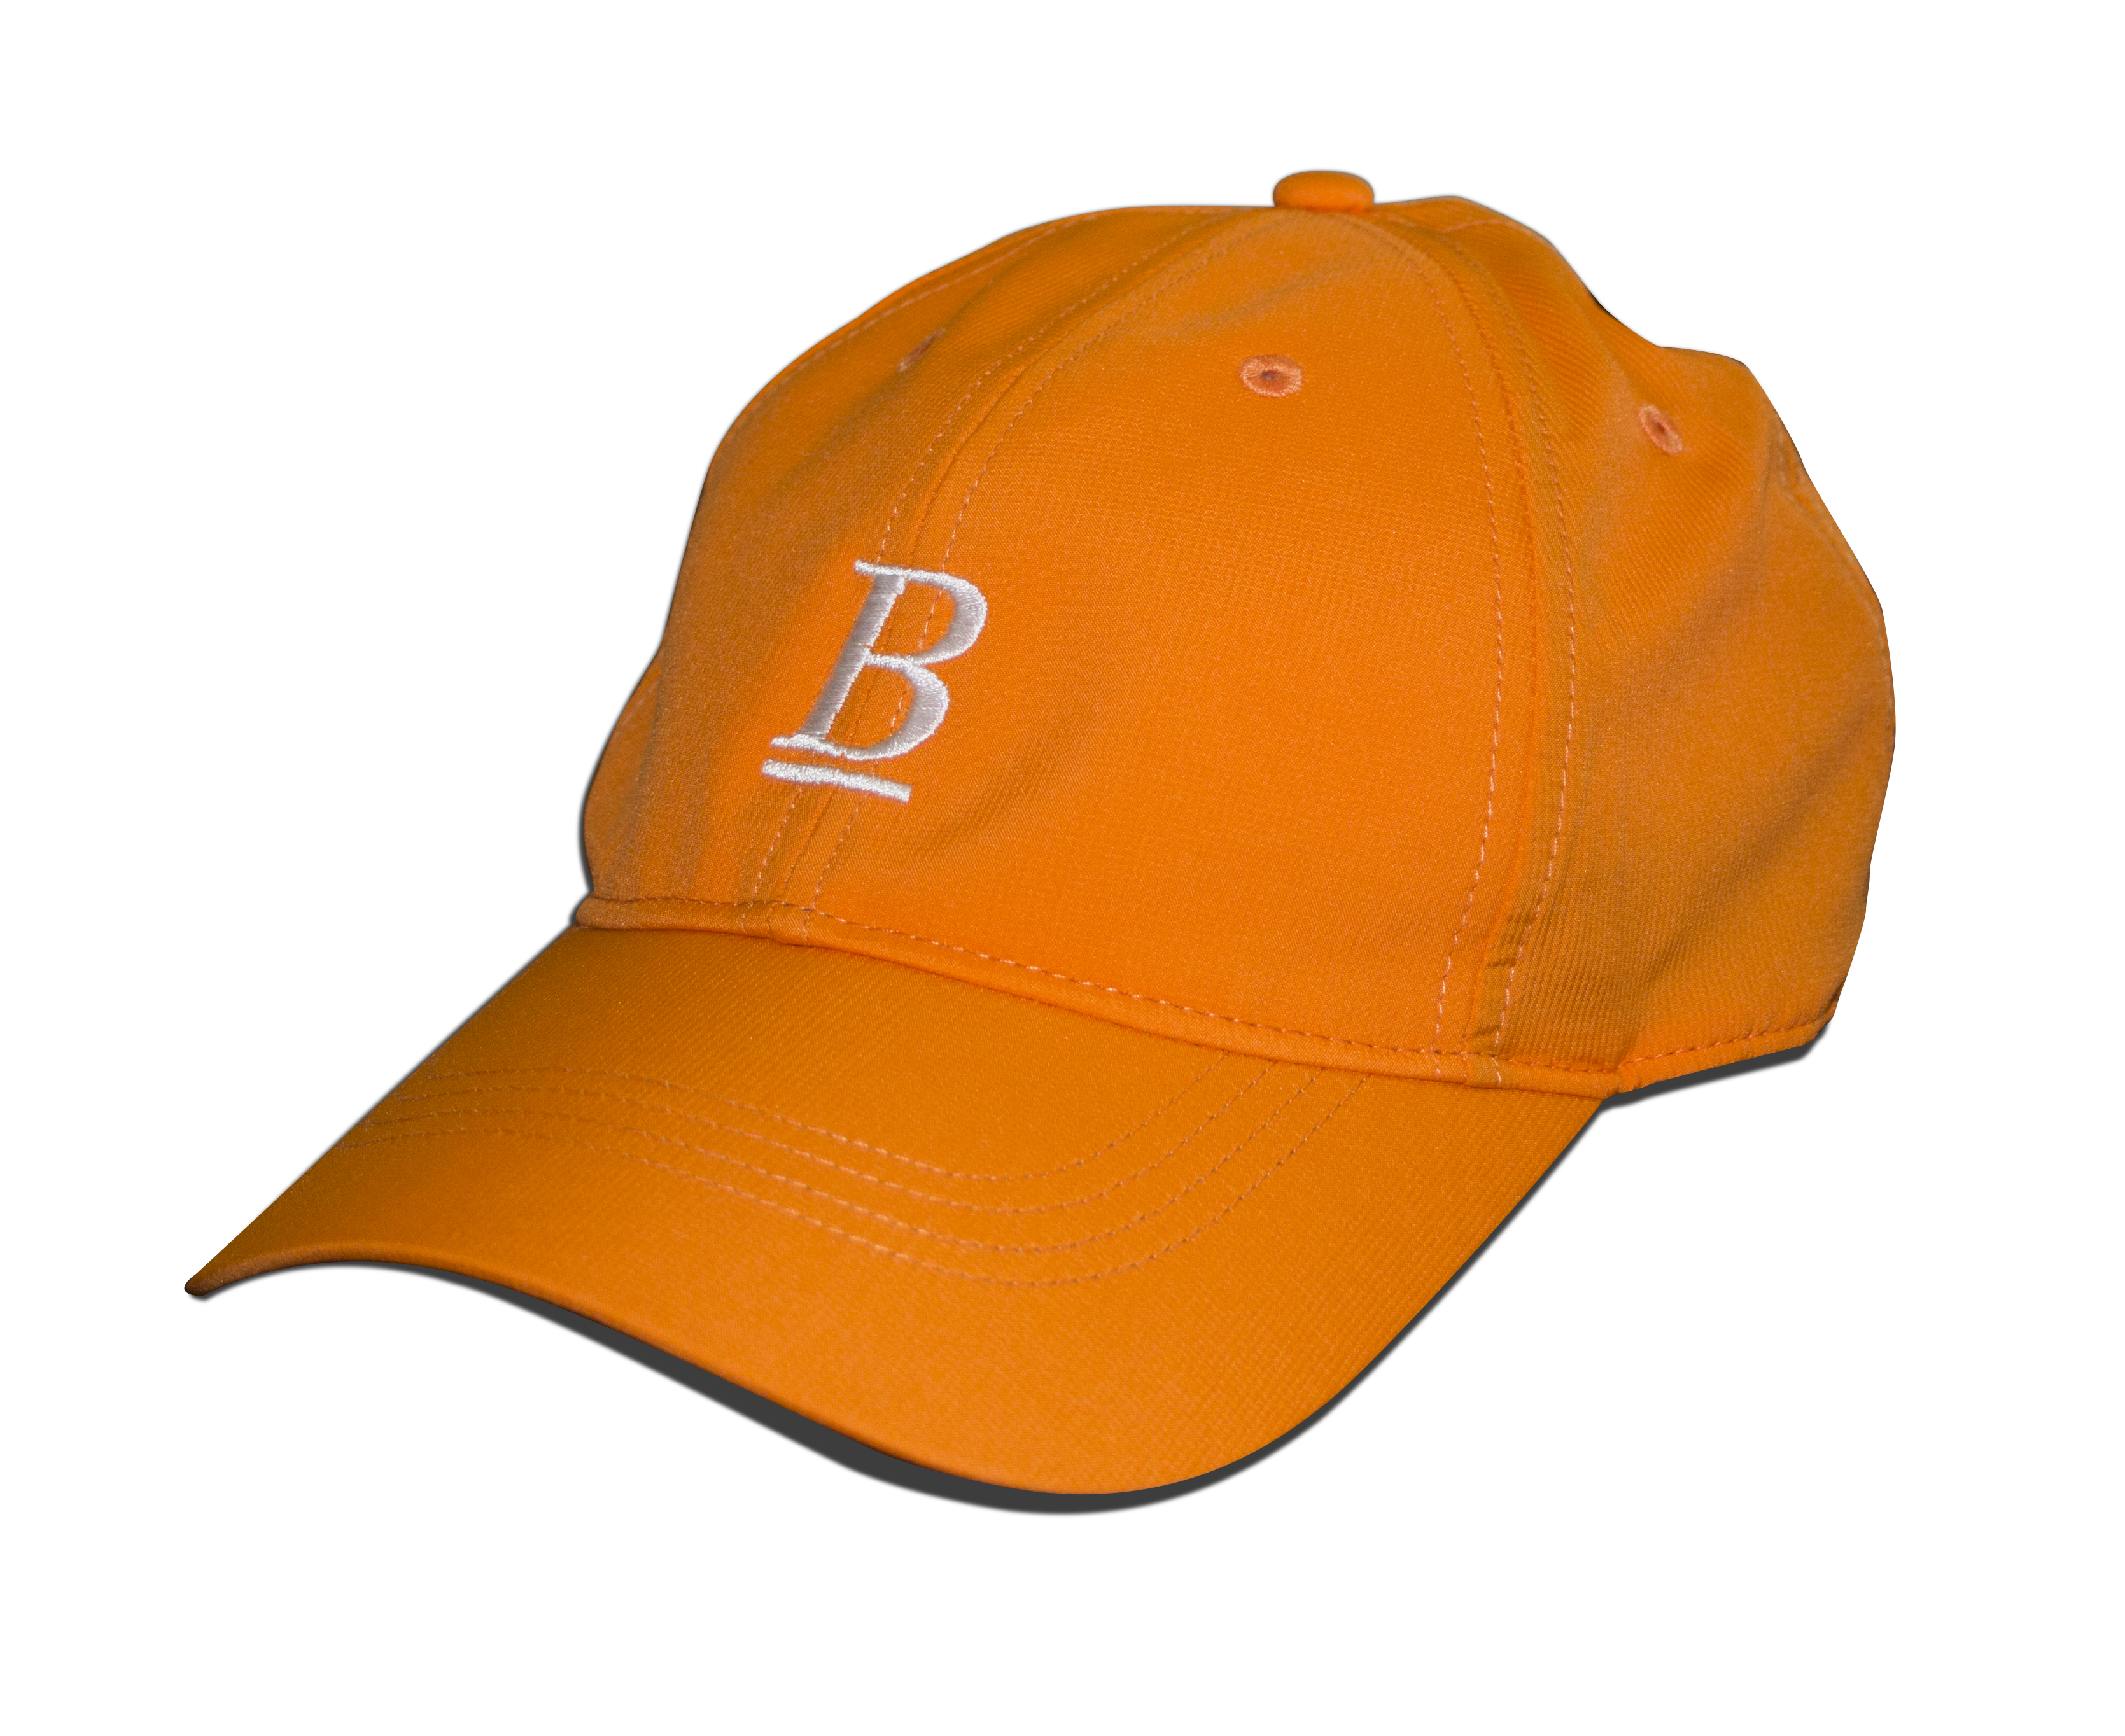 de3cec5ec34 Nike Tech Hat – Bright Orange w  White B – Blessey Marine